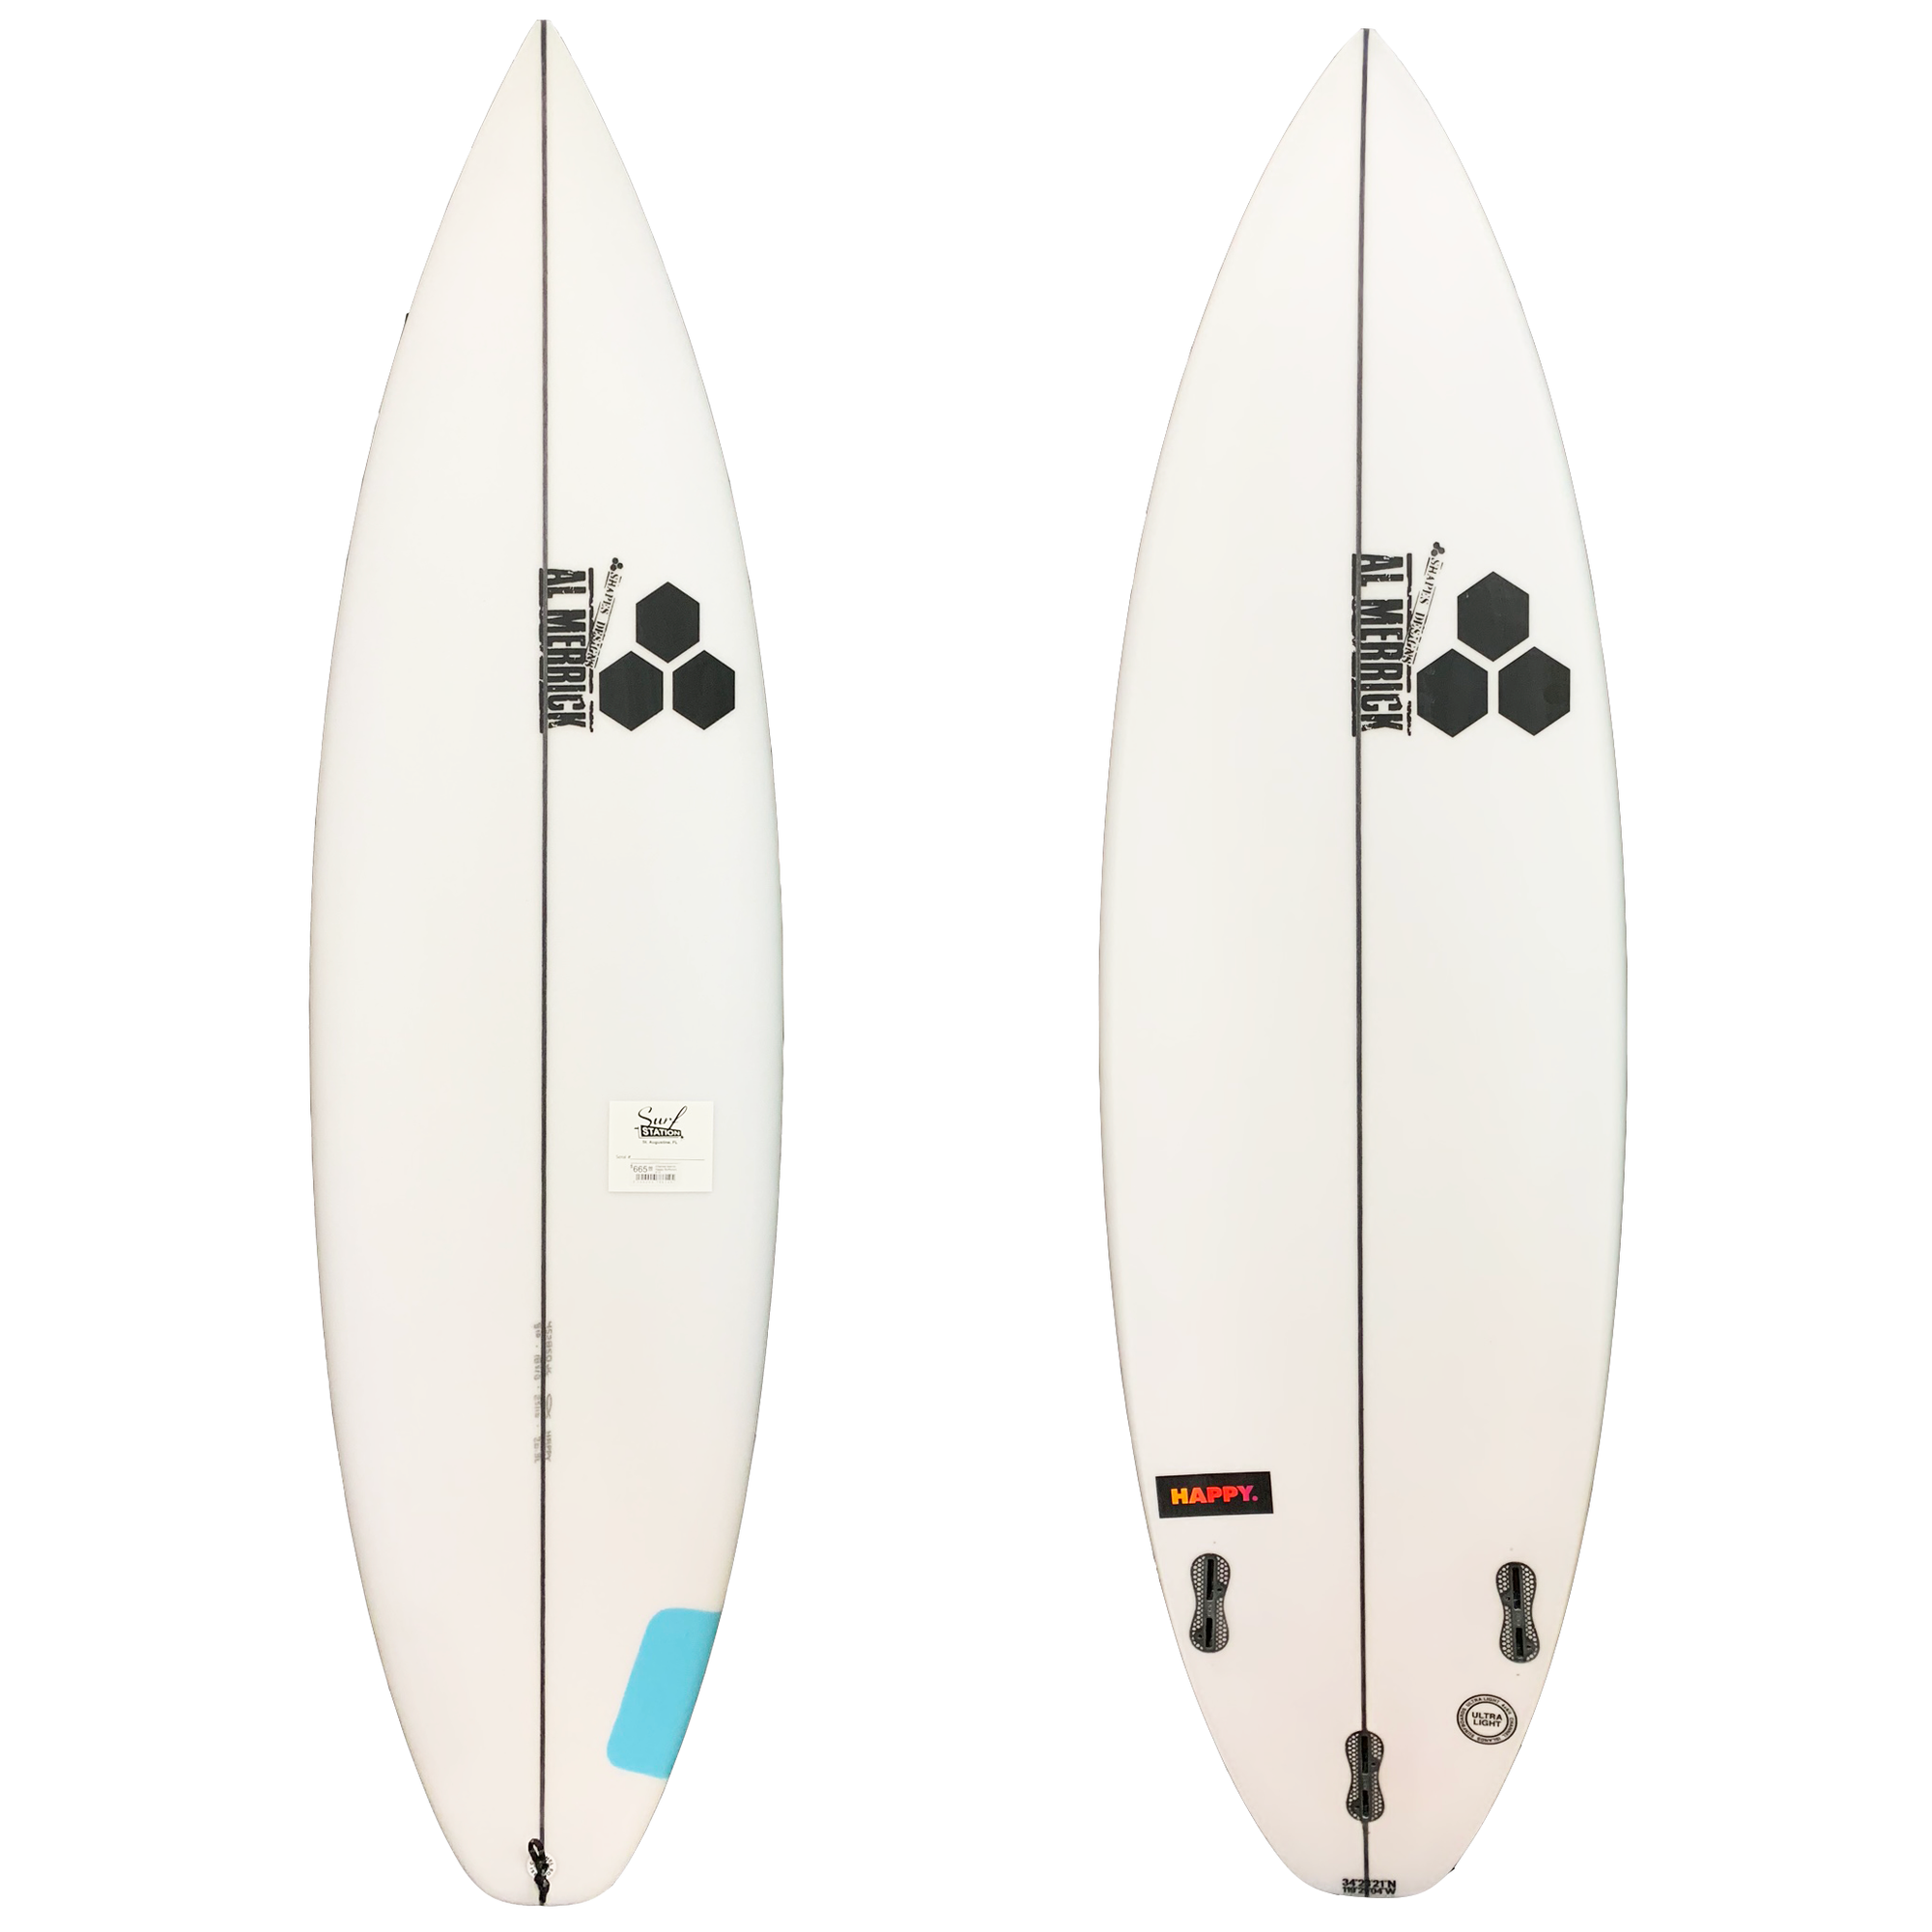 Channel Islands Happy Surfboard FCS II